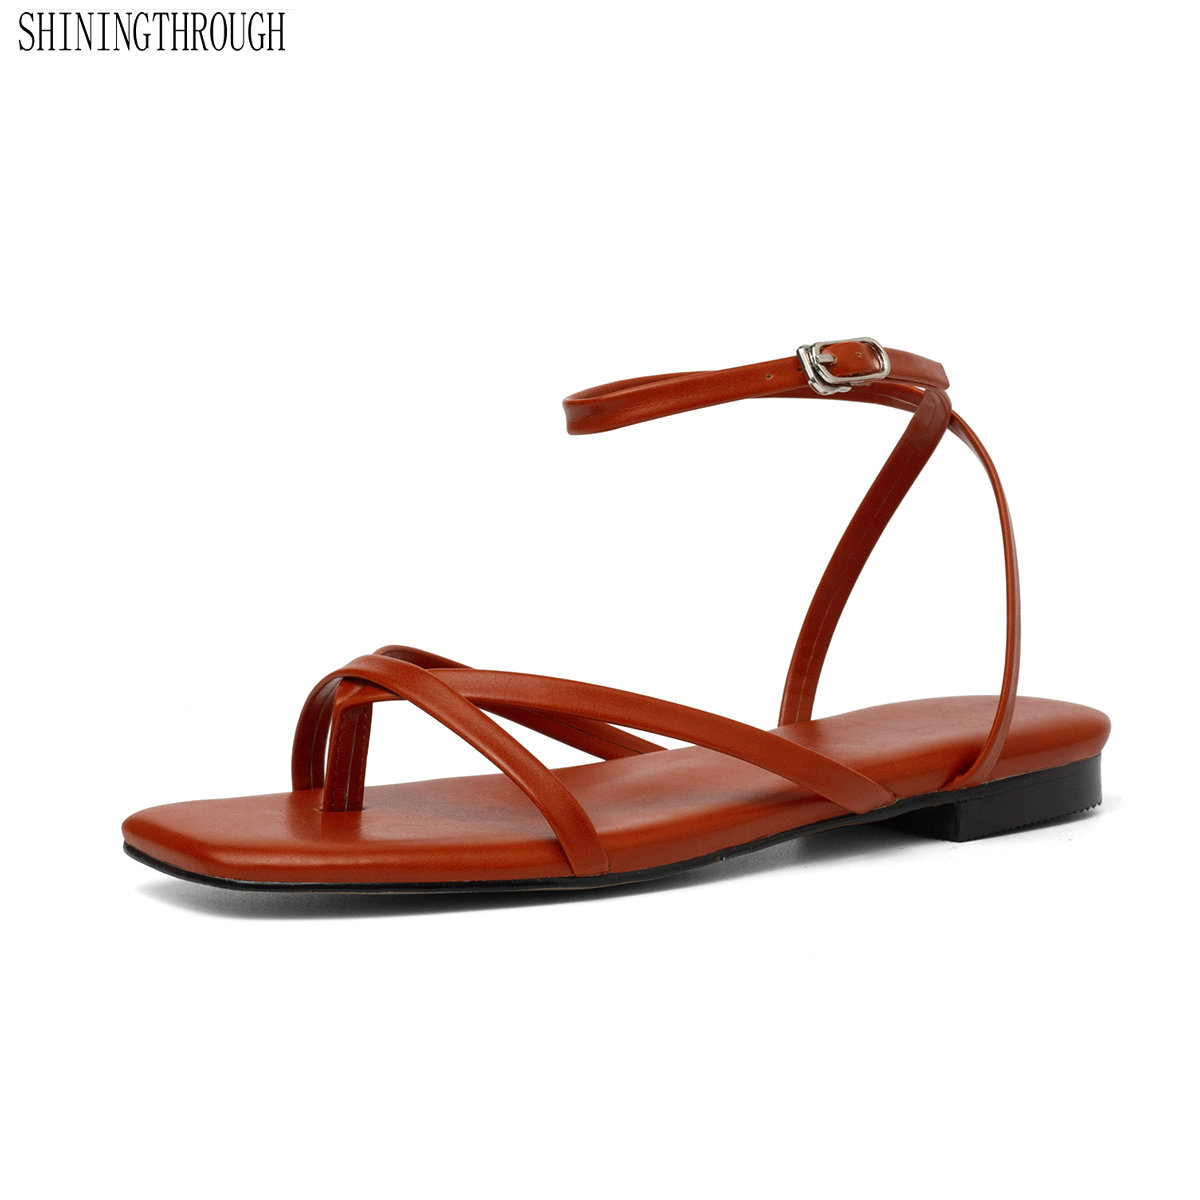 100 real leather ladies low heels sandals woman shoes flip flop flats summer casual work beach